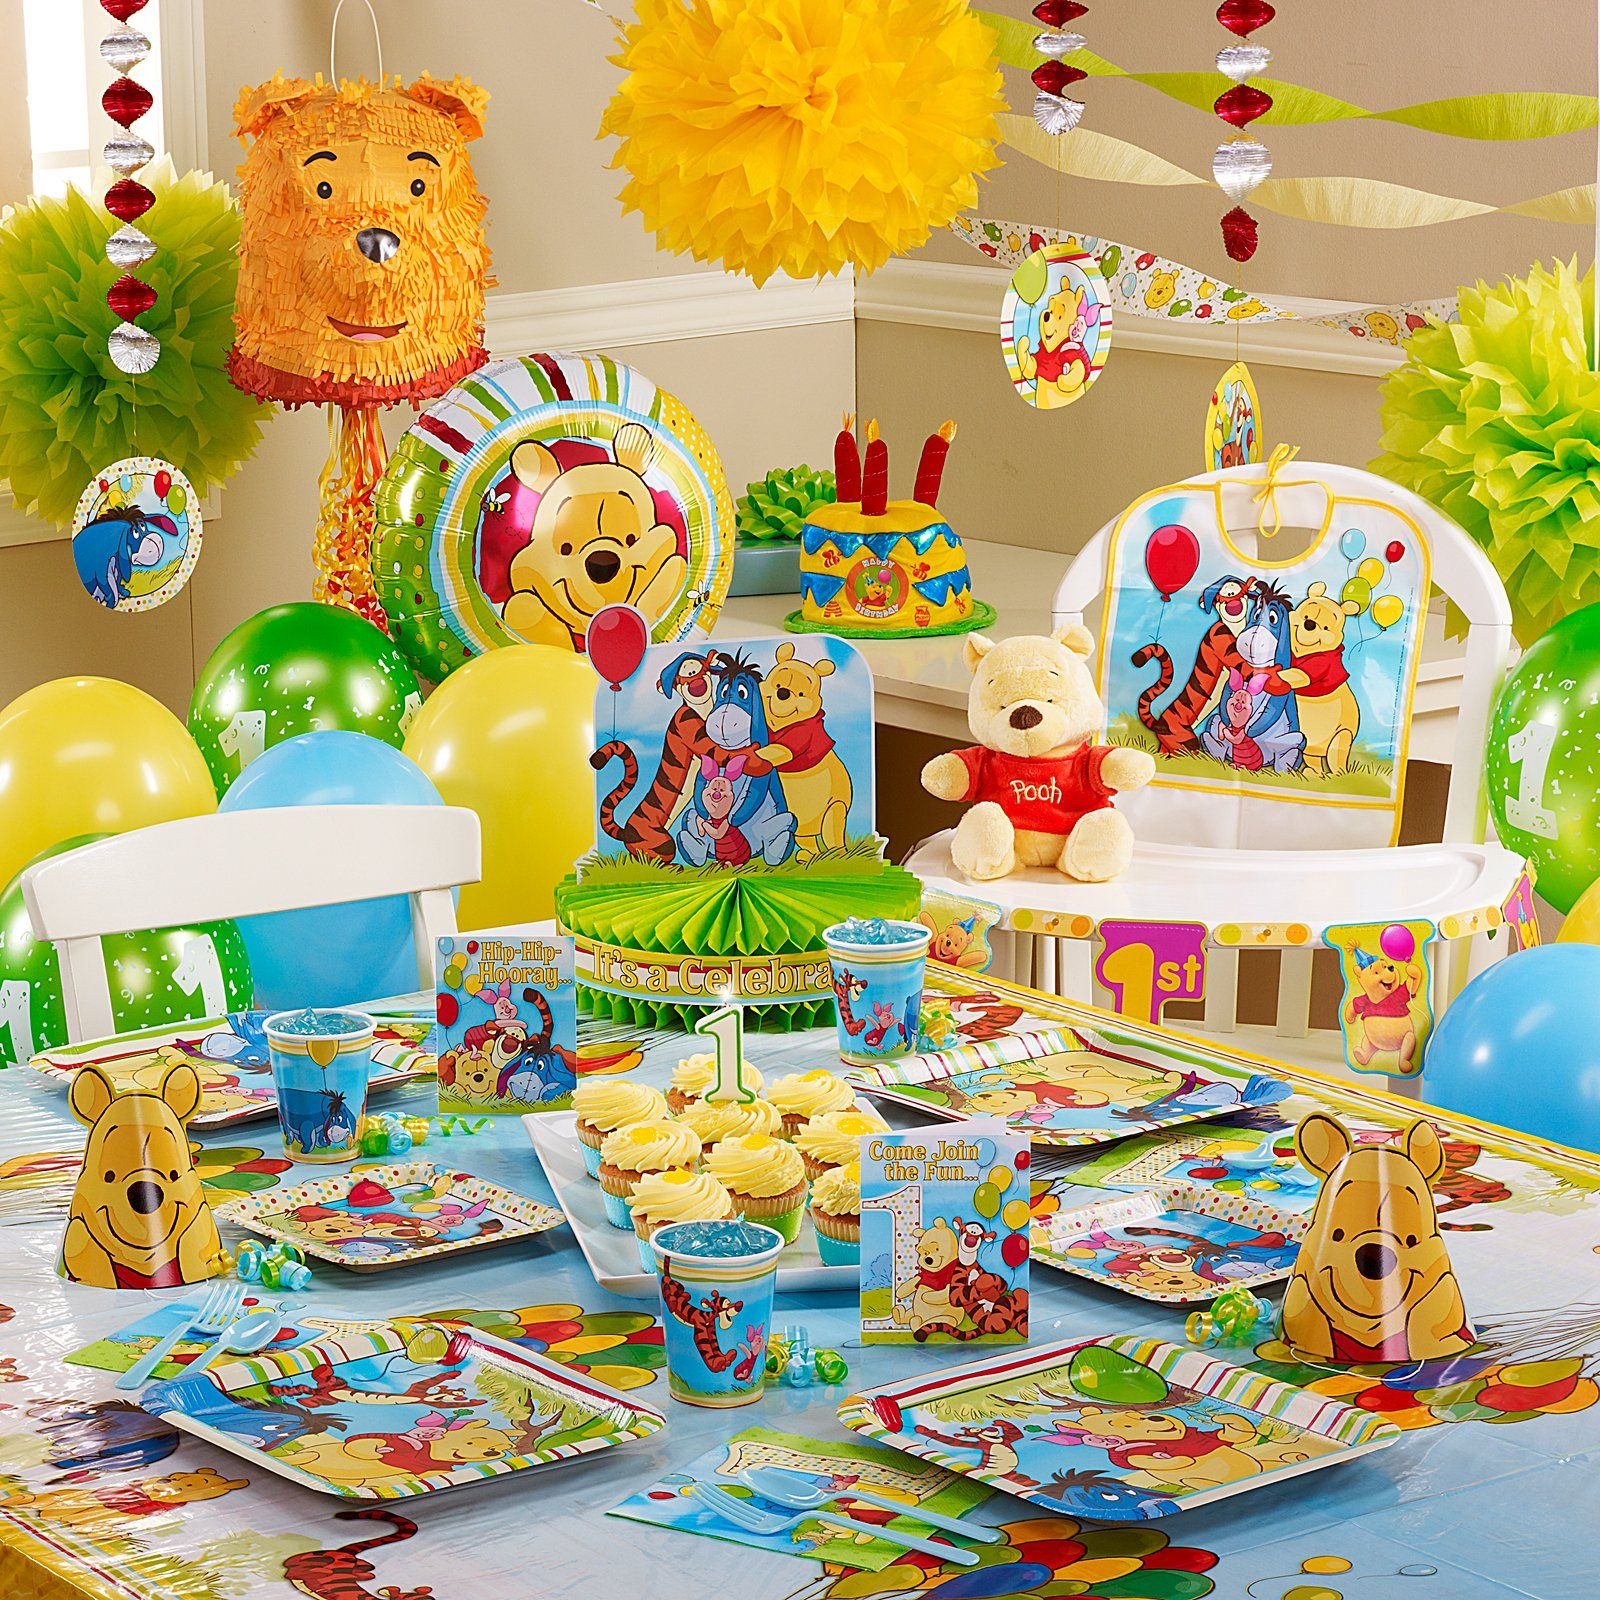 httpwwwbirthdayexpresscomDisneyPoohandPals1stBirthday